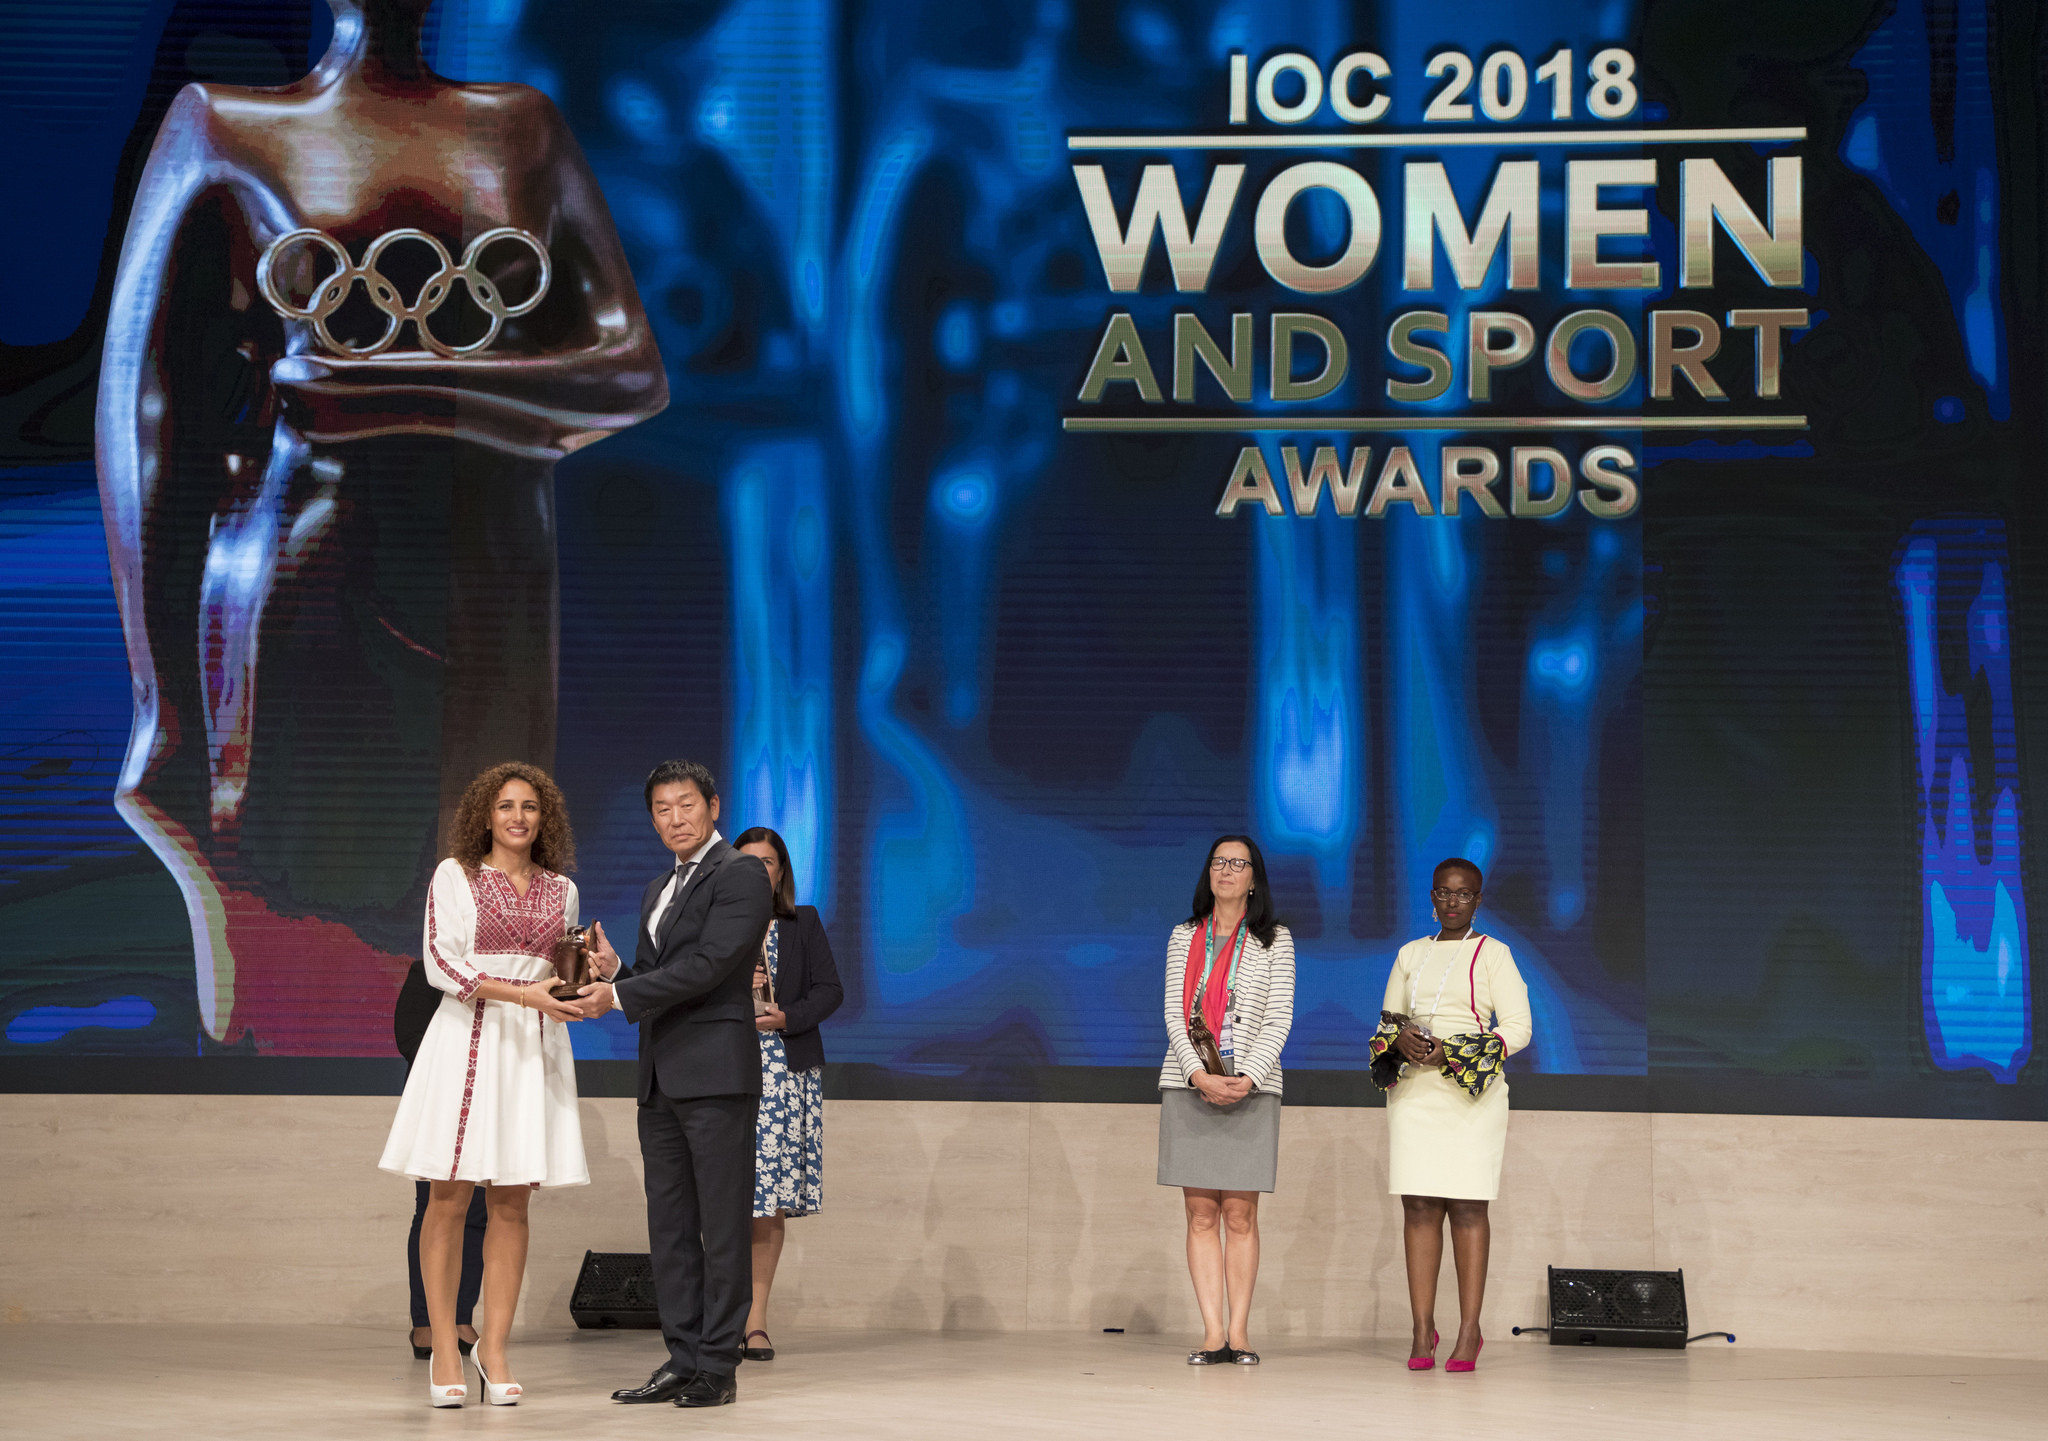 The Jordan Olympic Committee's Samar Nassar was among the winners of Women and Sport awards ©IOC